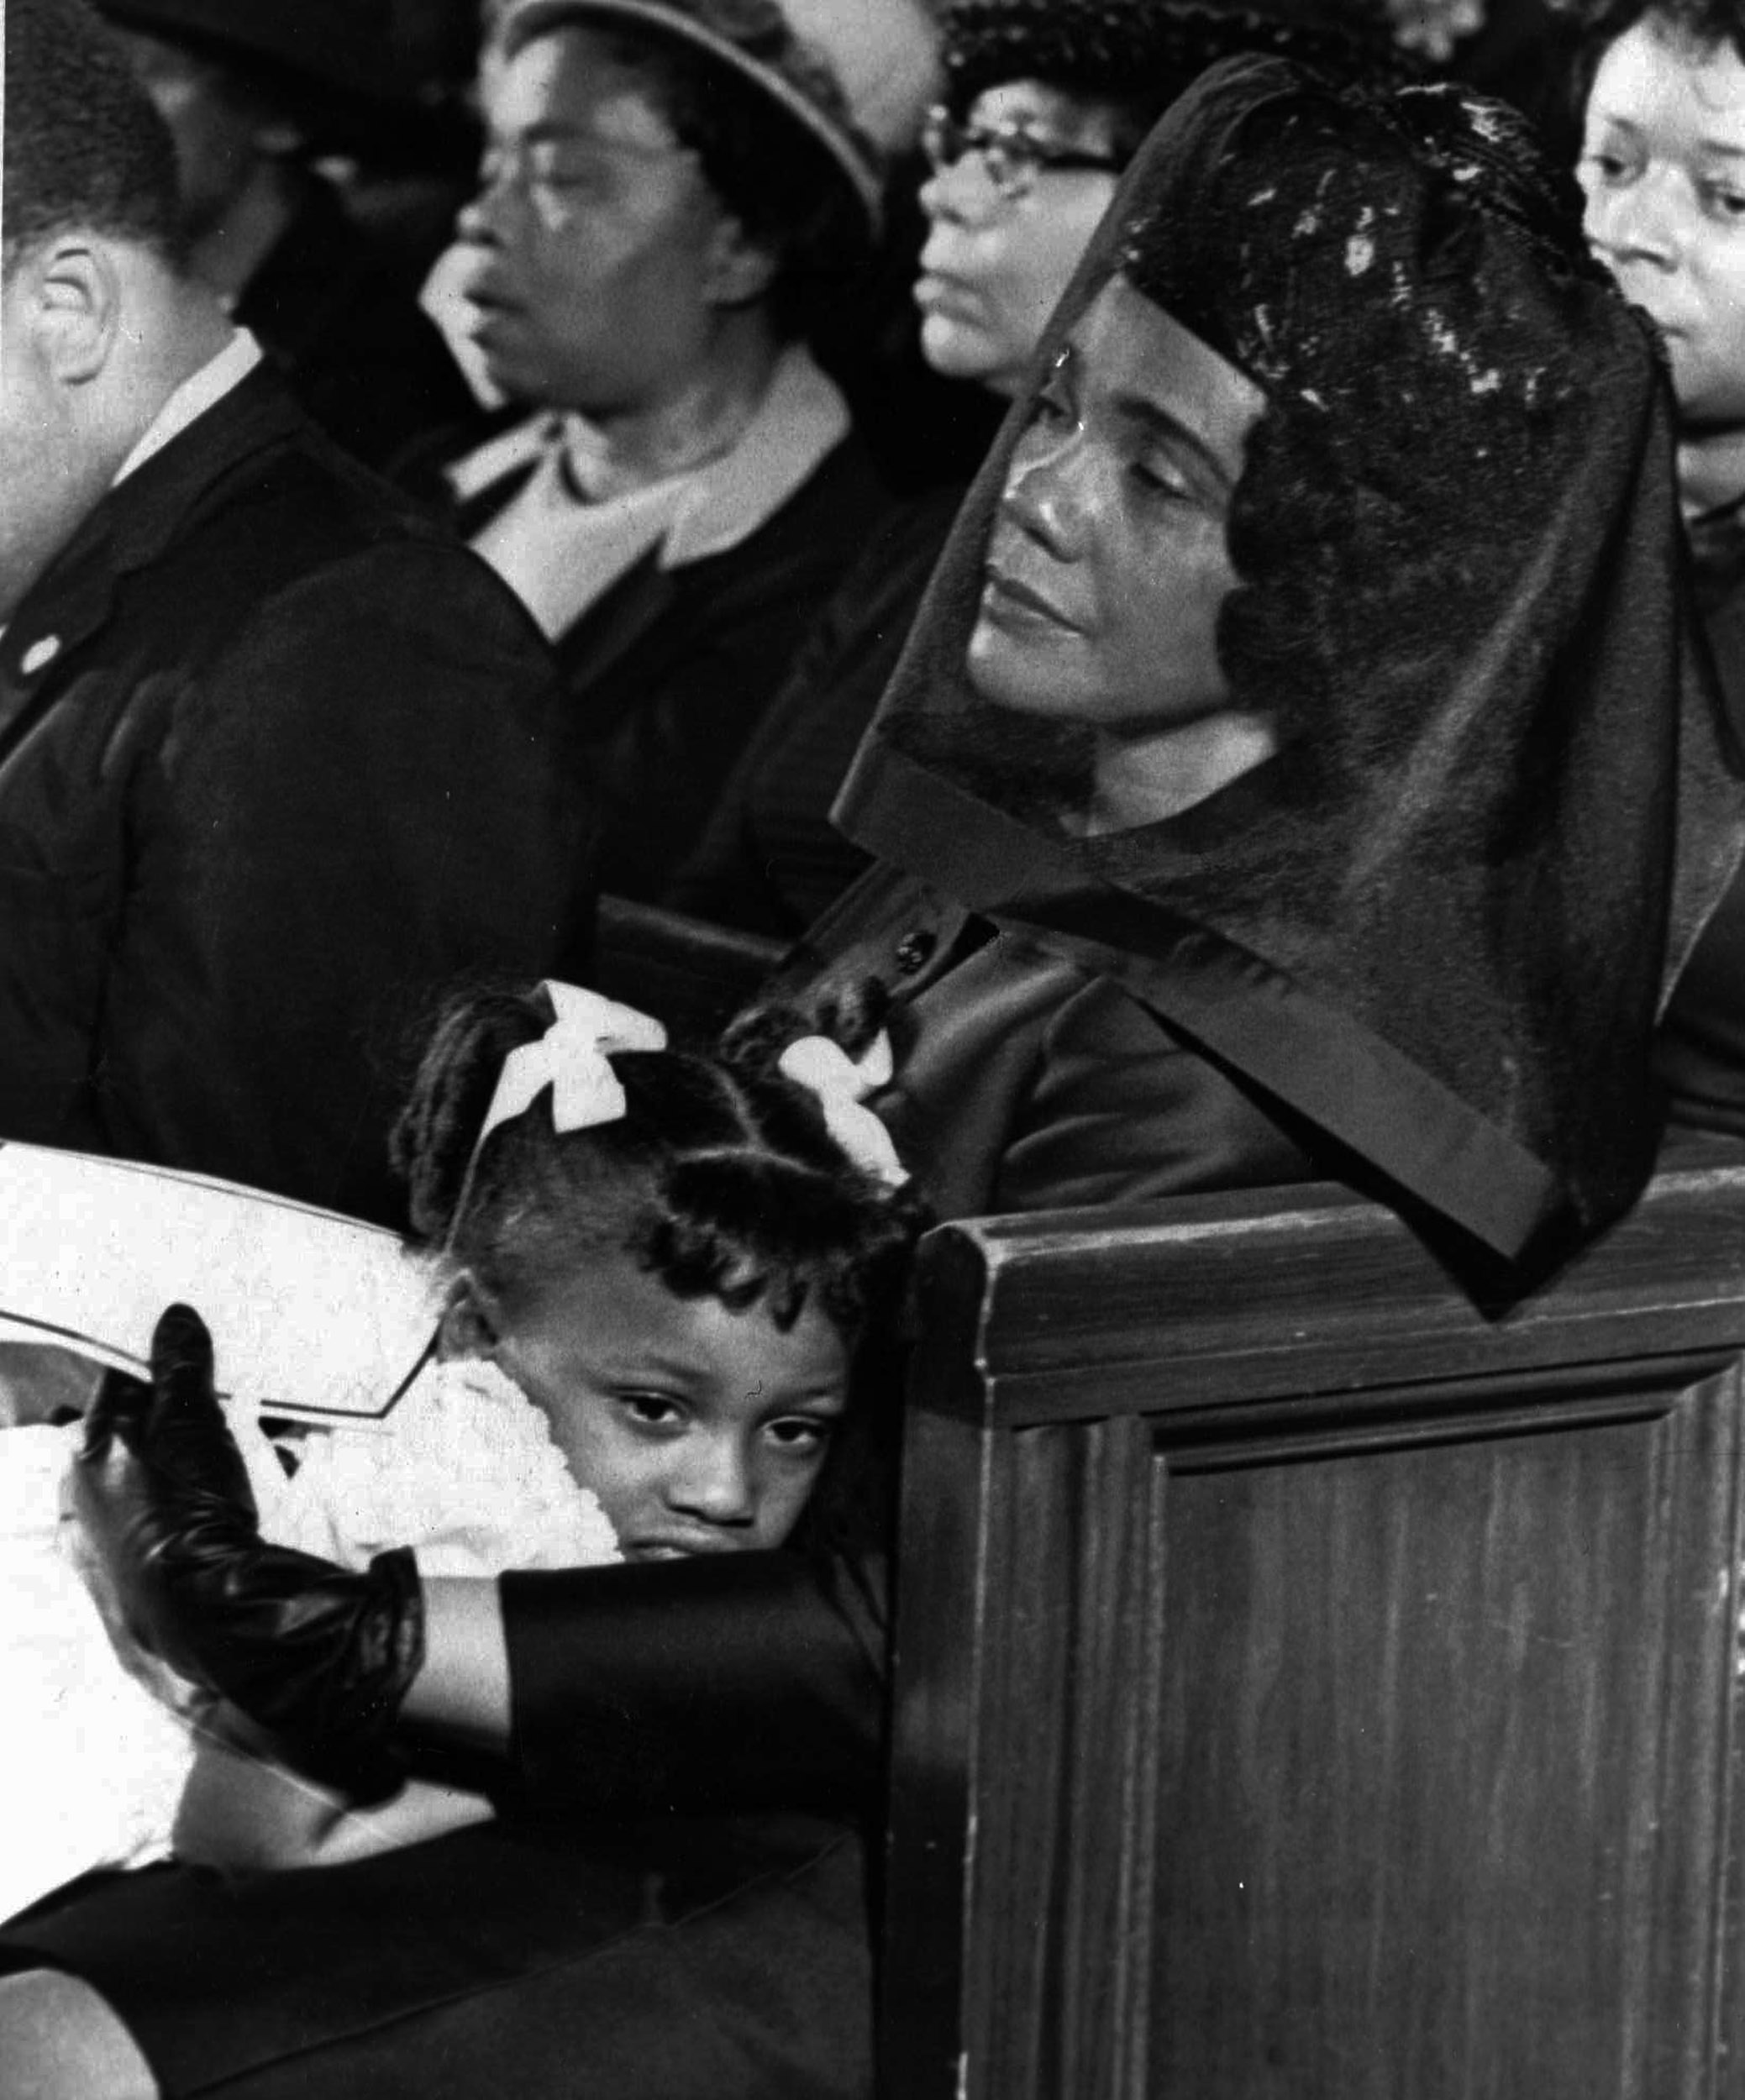 Coretta Scott King and her daughter, Bernice, are shown in this April 9, 1968 photo captured by Ebony photographer Moneta J. Sleet Jr., attending the funeral of her husband, Martin Luther King, Jr.